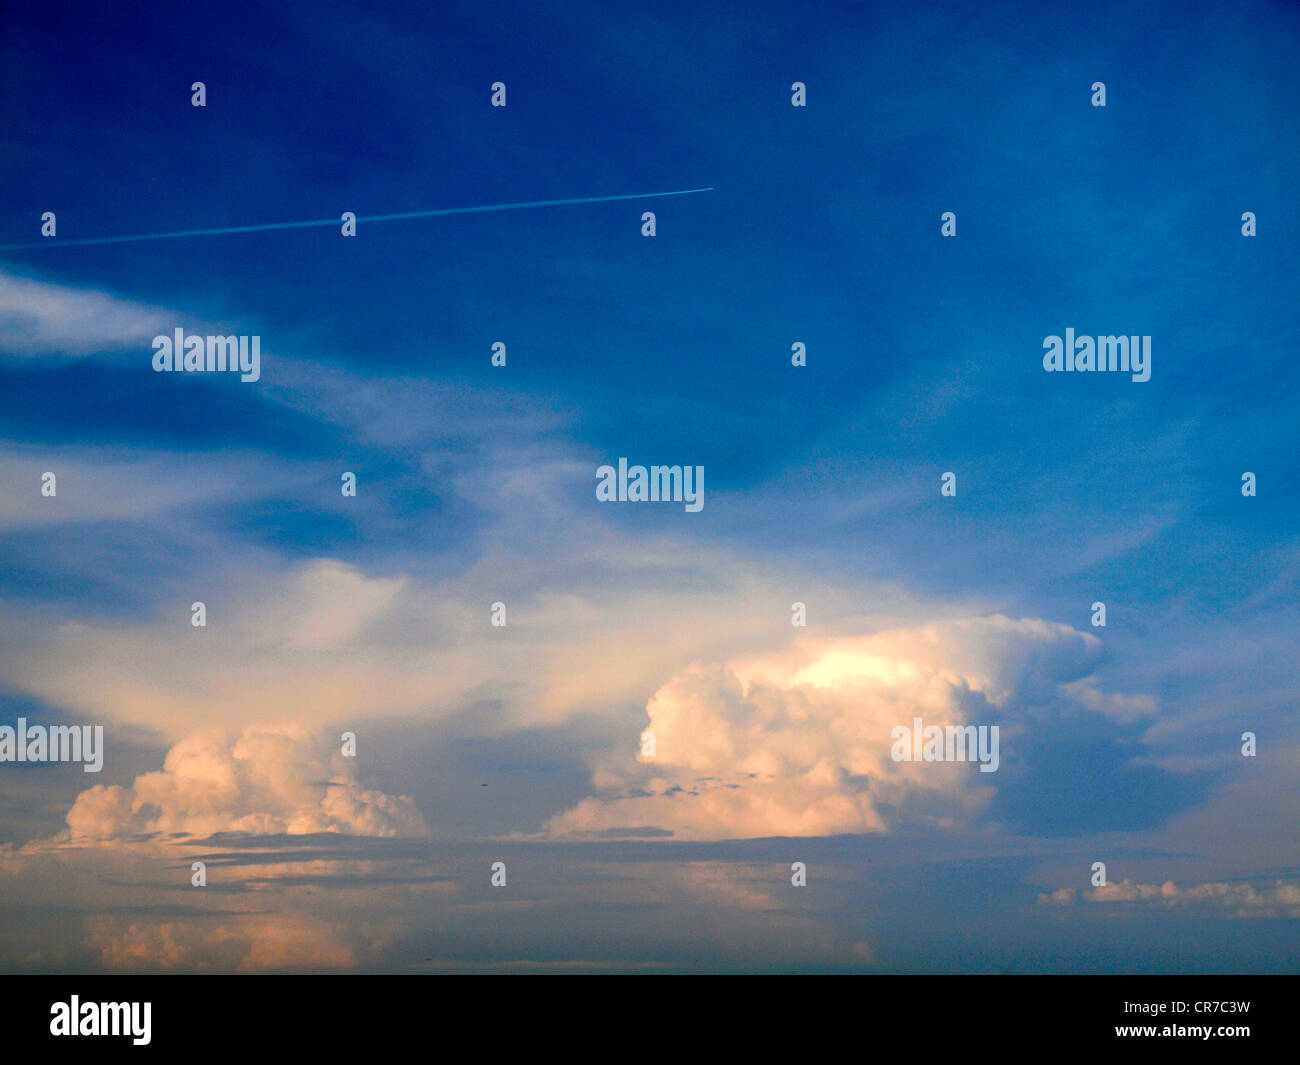 Digital shot of a large storm cloud near Voronezh. (Visible grain @ 100%) - Stock Image